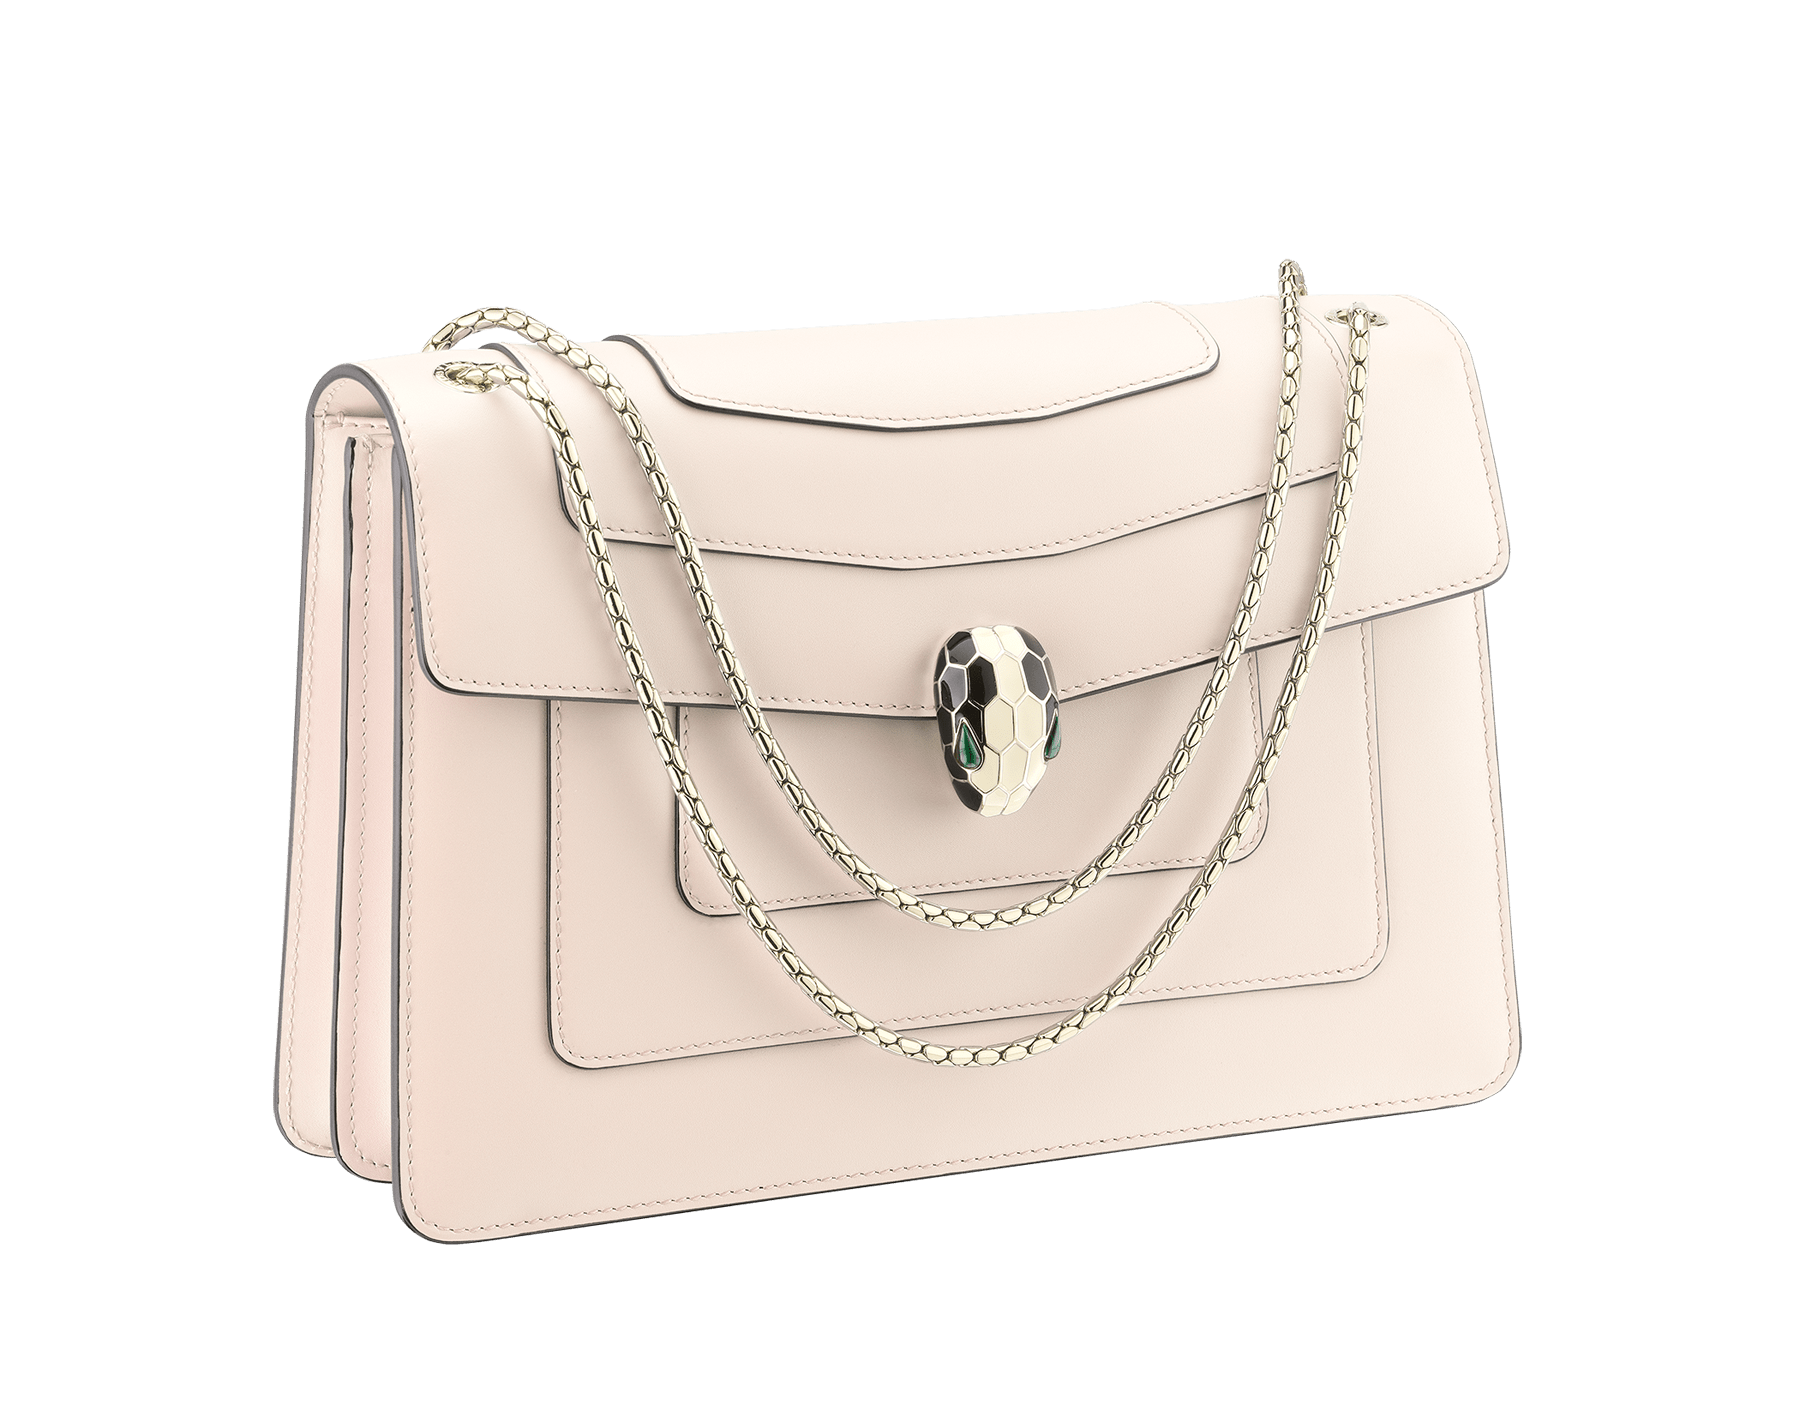 """""""Serpenti Forever """" shoulder bag in carmine jasper calf leather. Iconic snakehead closure in light gold plated brass enriched with black and white enamel and green malachite eyes 521-CLd image 2"""